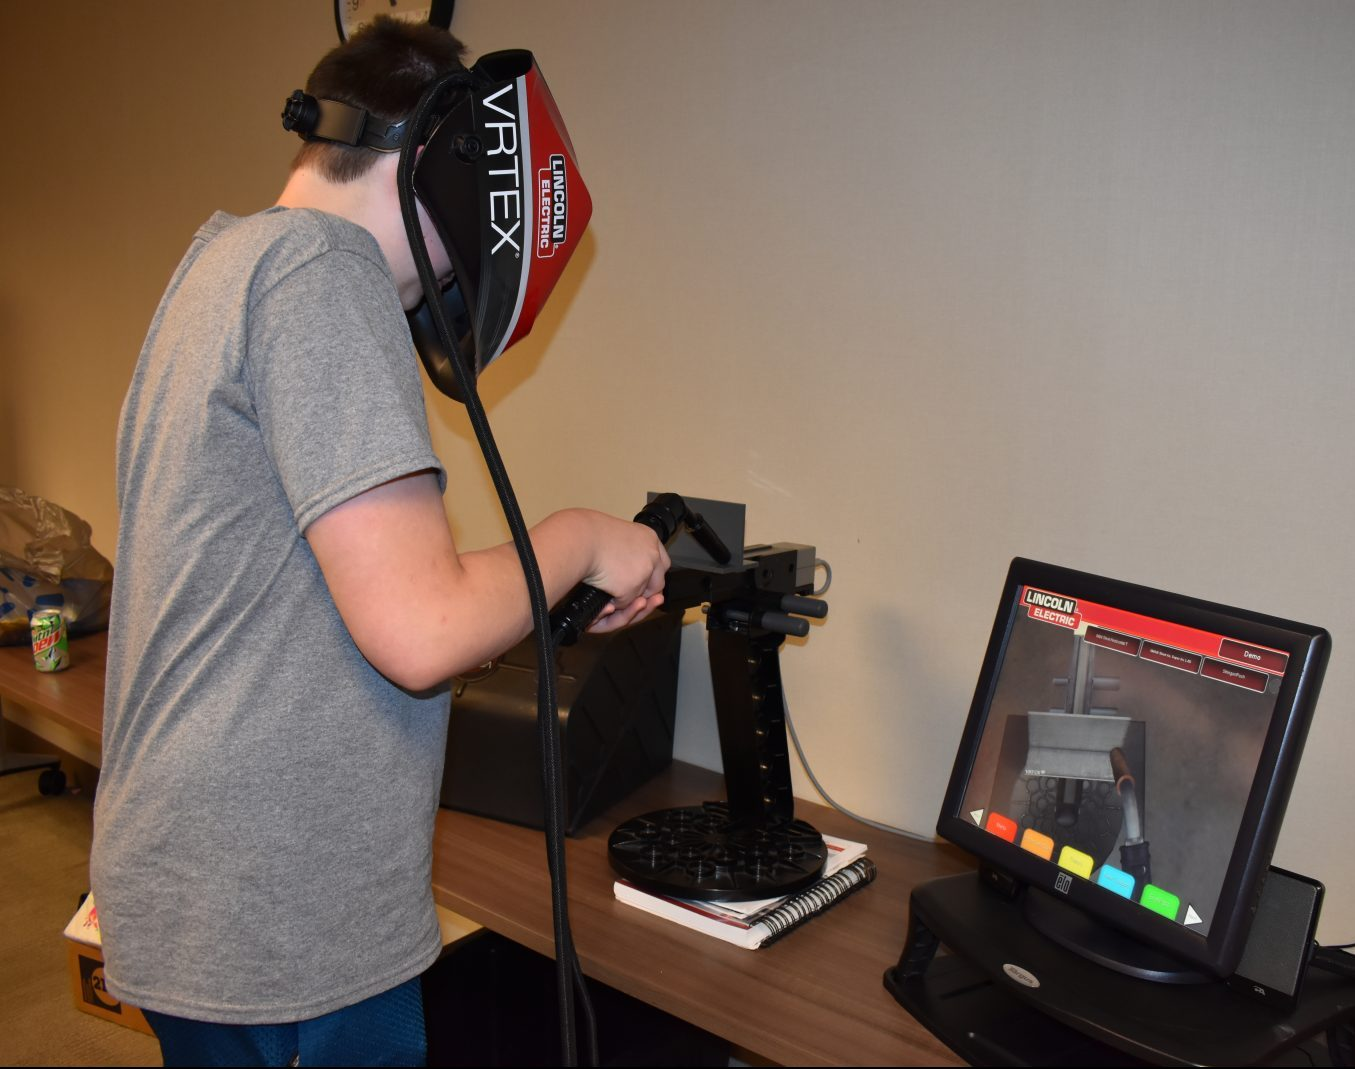 Student works with the Lincoln Electric Virtual Welder at the Kohler Skilled Trades Camp